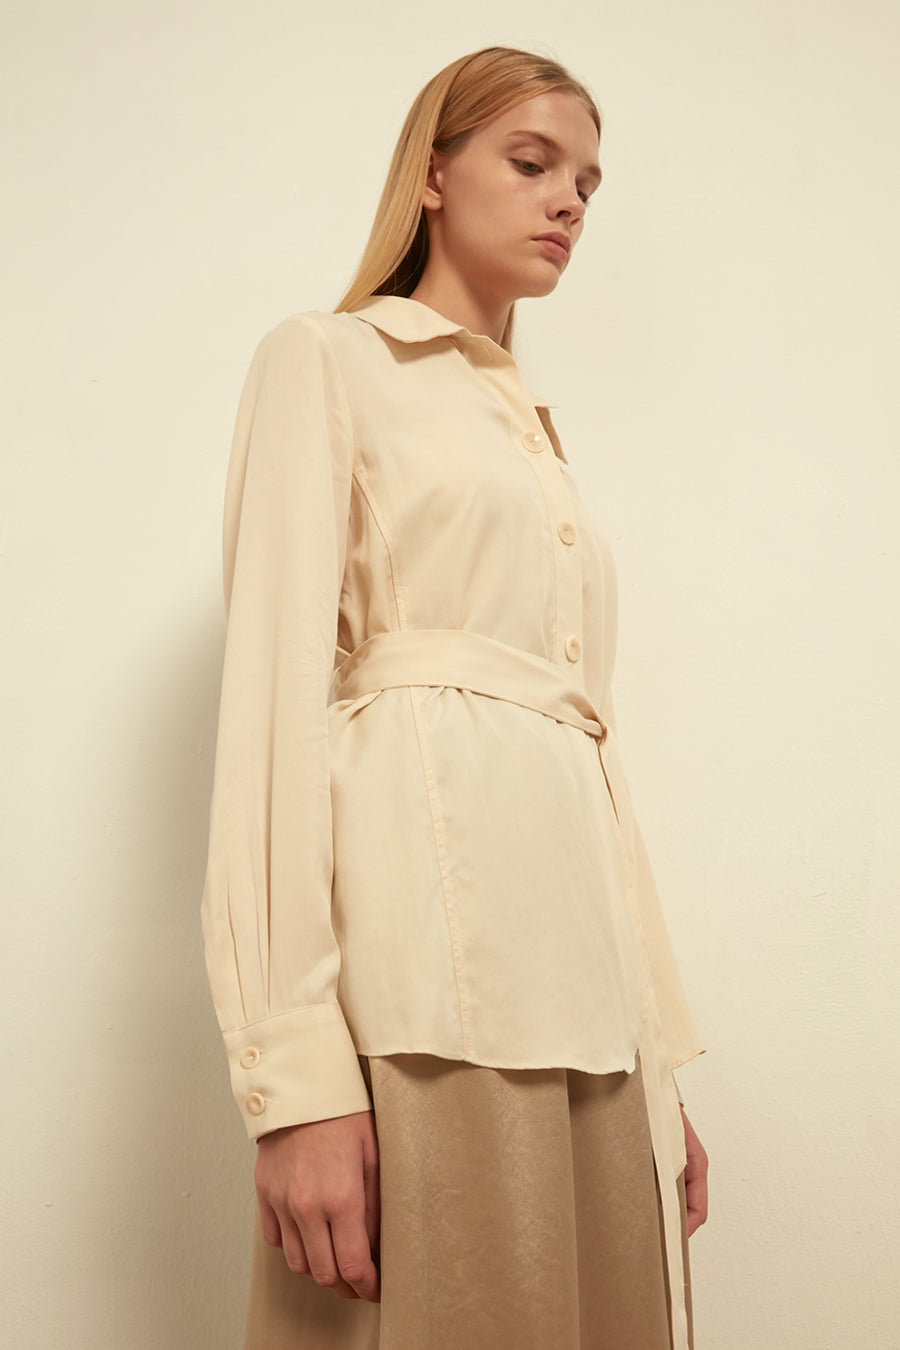 Tencel shirt with waist tie - Zelle Studio